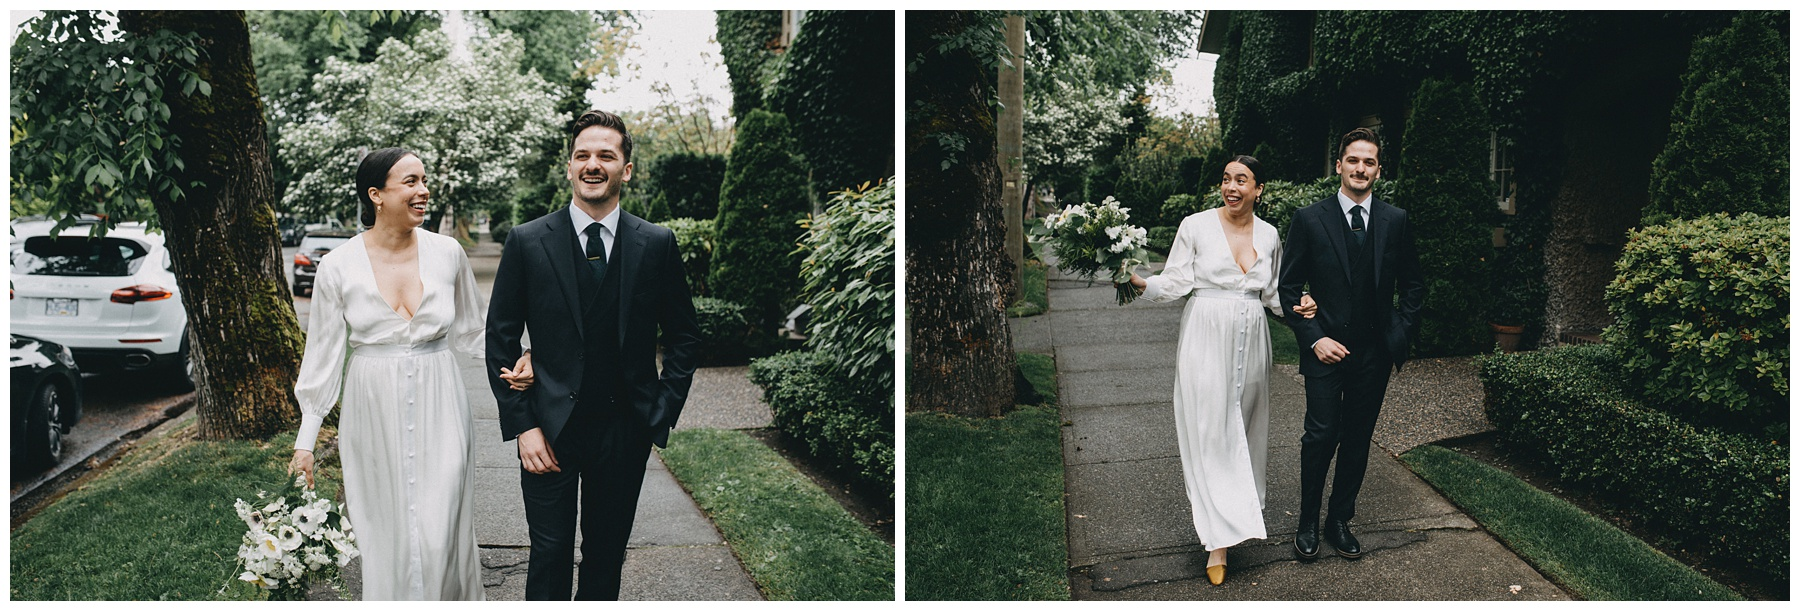 Vancouver wedding photographer stanley park_1060.jpg